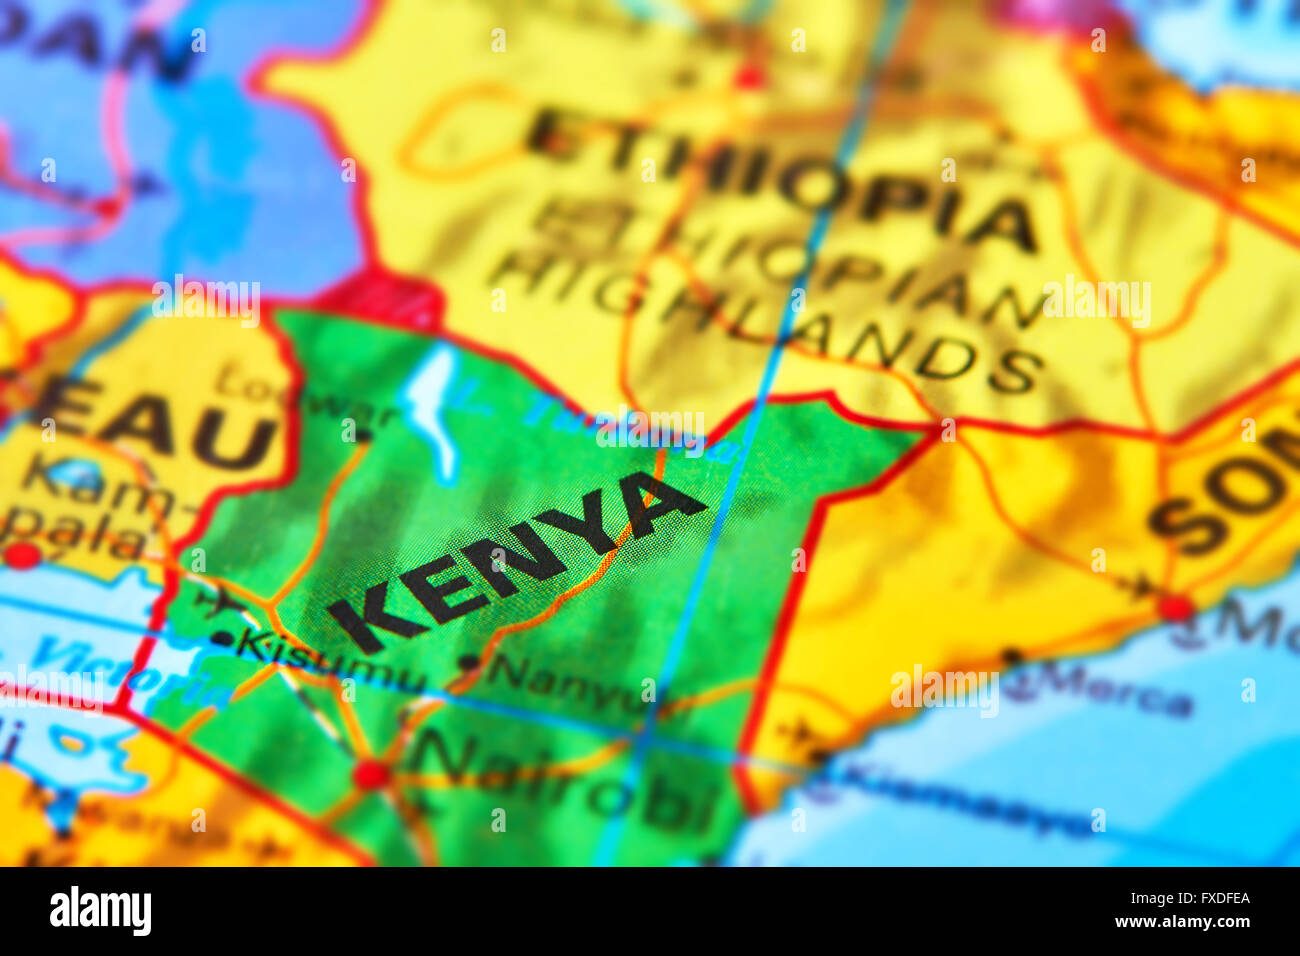 Kenya country in africa on the world map stock photo 102330434 alamy kenya country in africa on the world map gumiabroncs Image collections